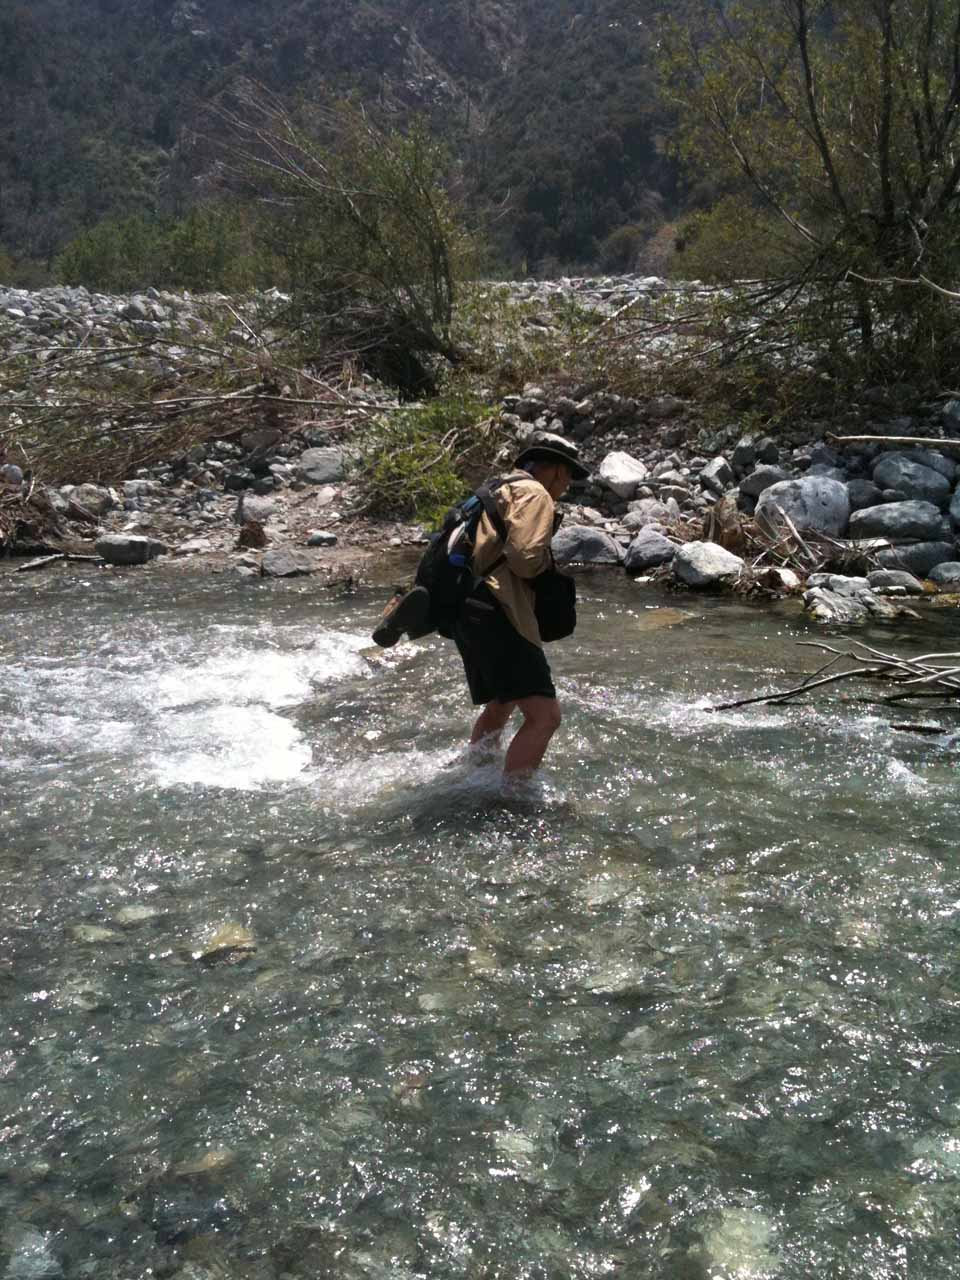 Me crossing Lytle Creek after having identified this spot as most suitable for a crossing